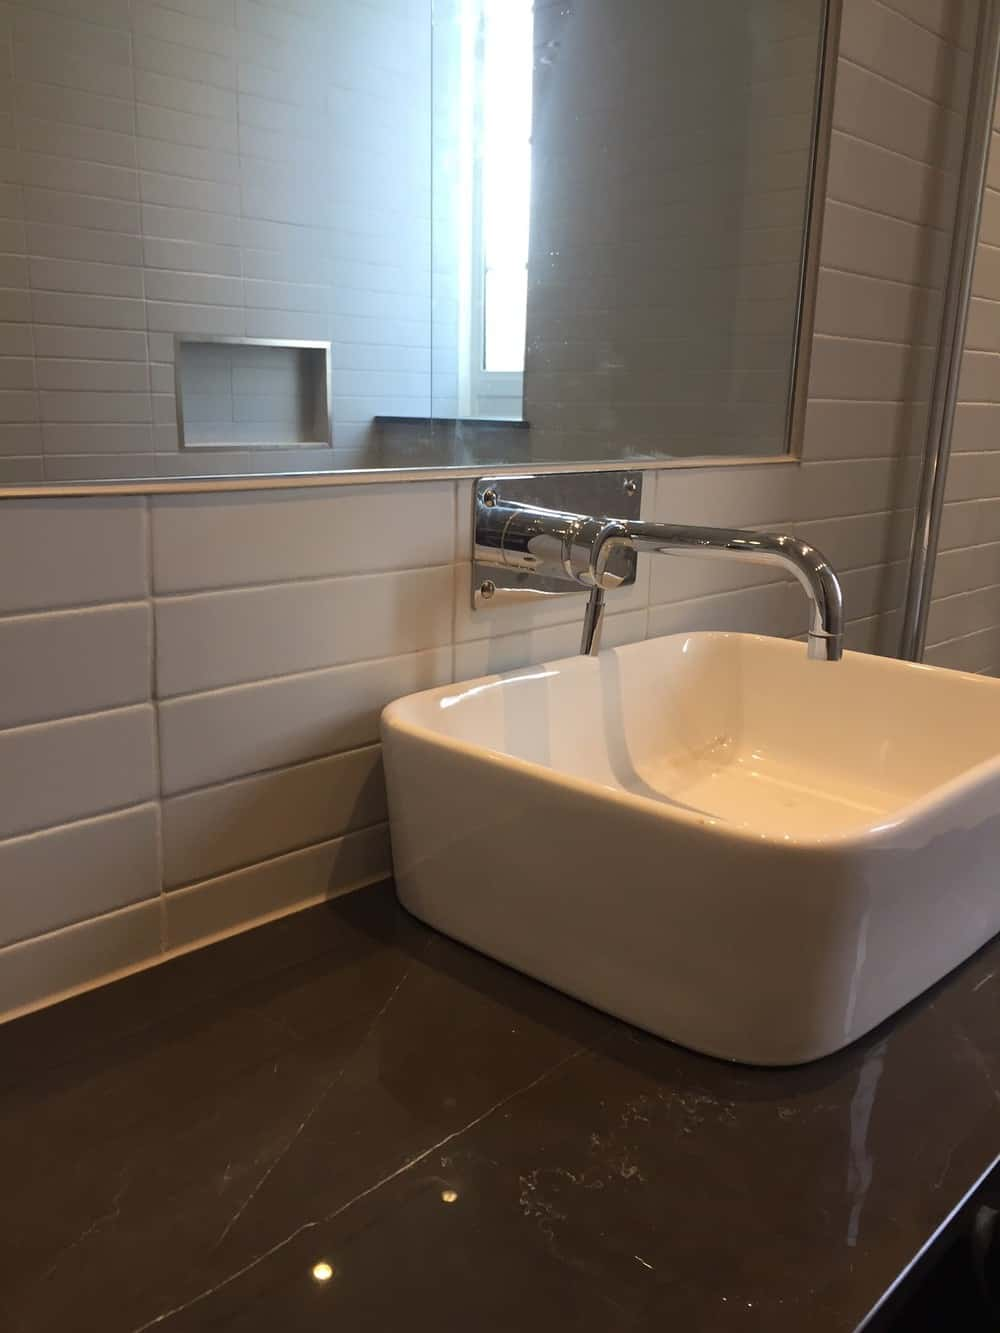 bathroom fittings why are they important. For A Family, Full-size Laundry Facilities Are Very Important. The Washer And Dryer Were Fitted Into Closet In Family Bathroom. Bathroom Fittings Why They Important